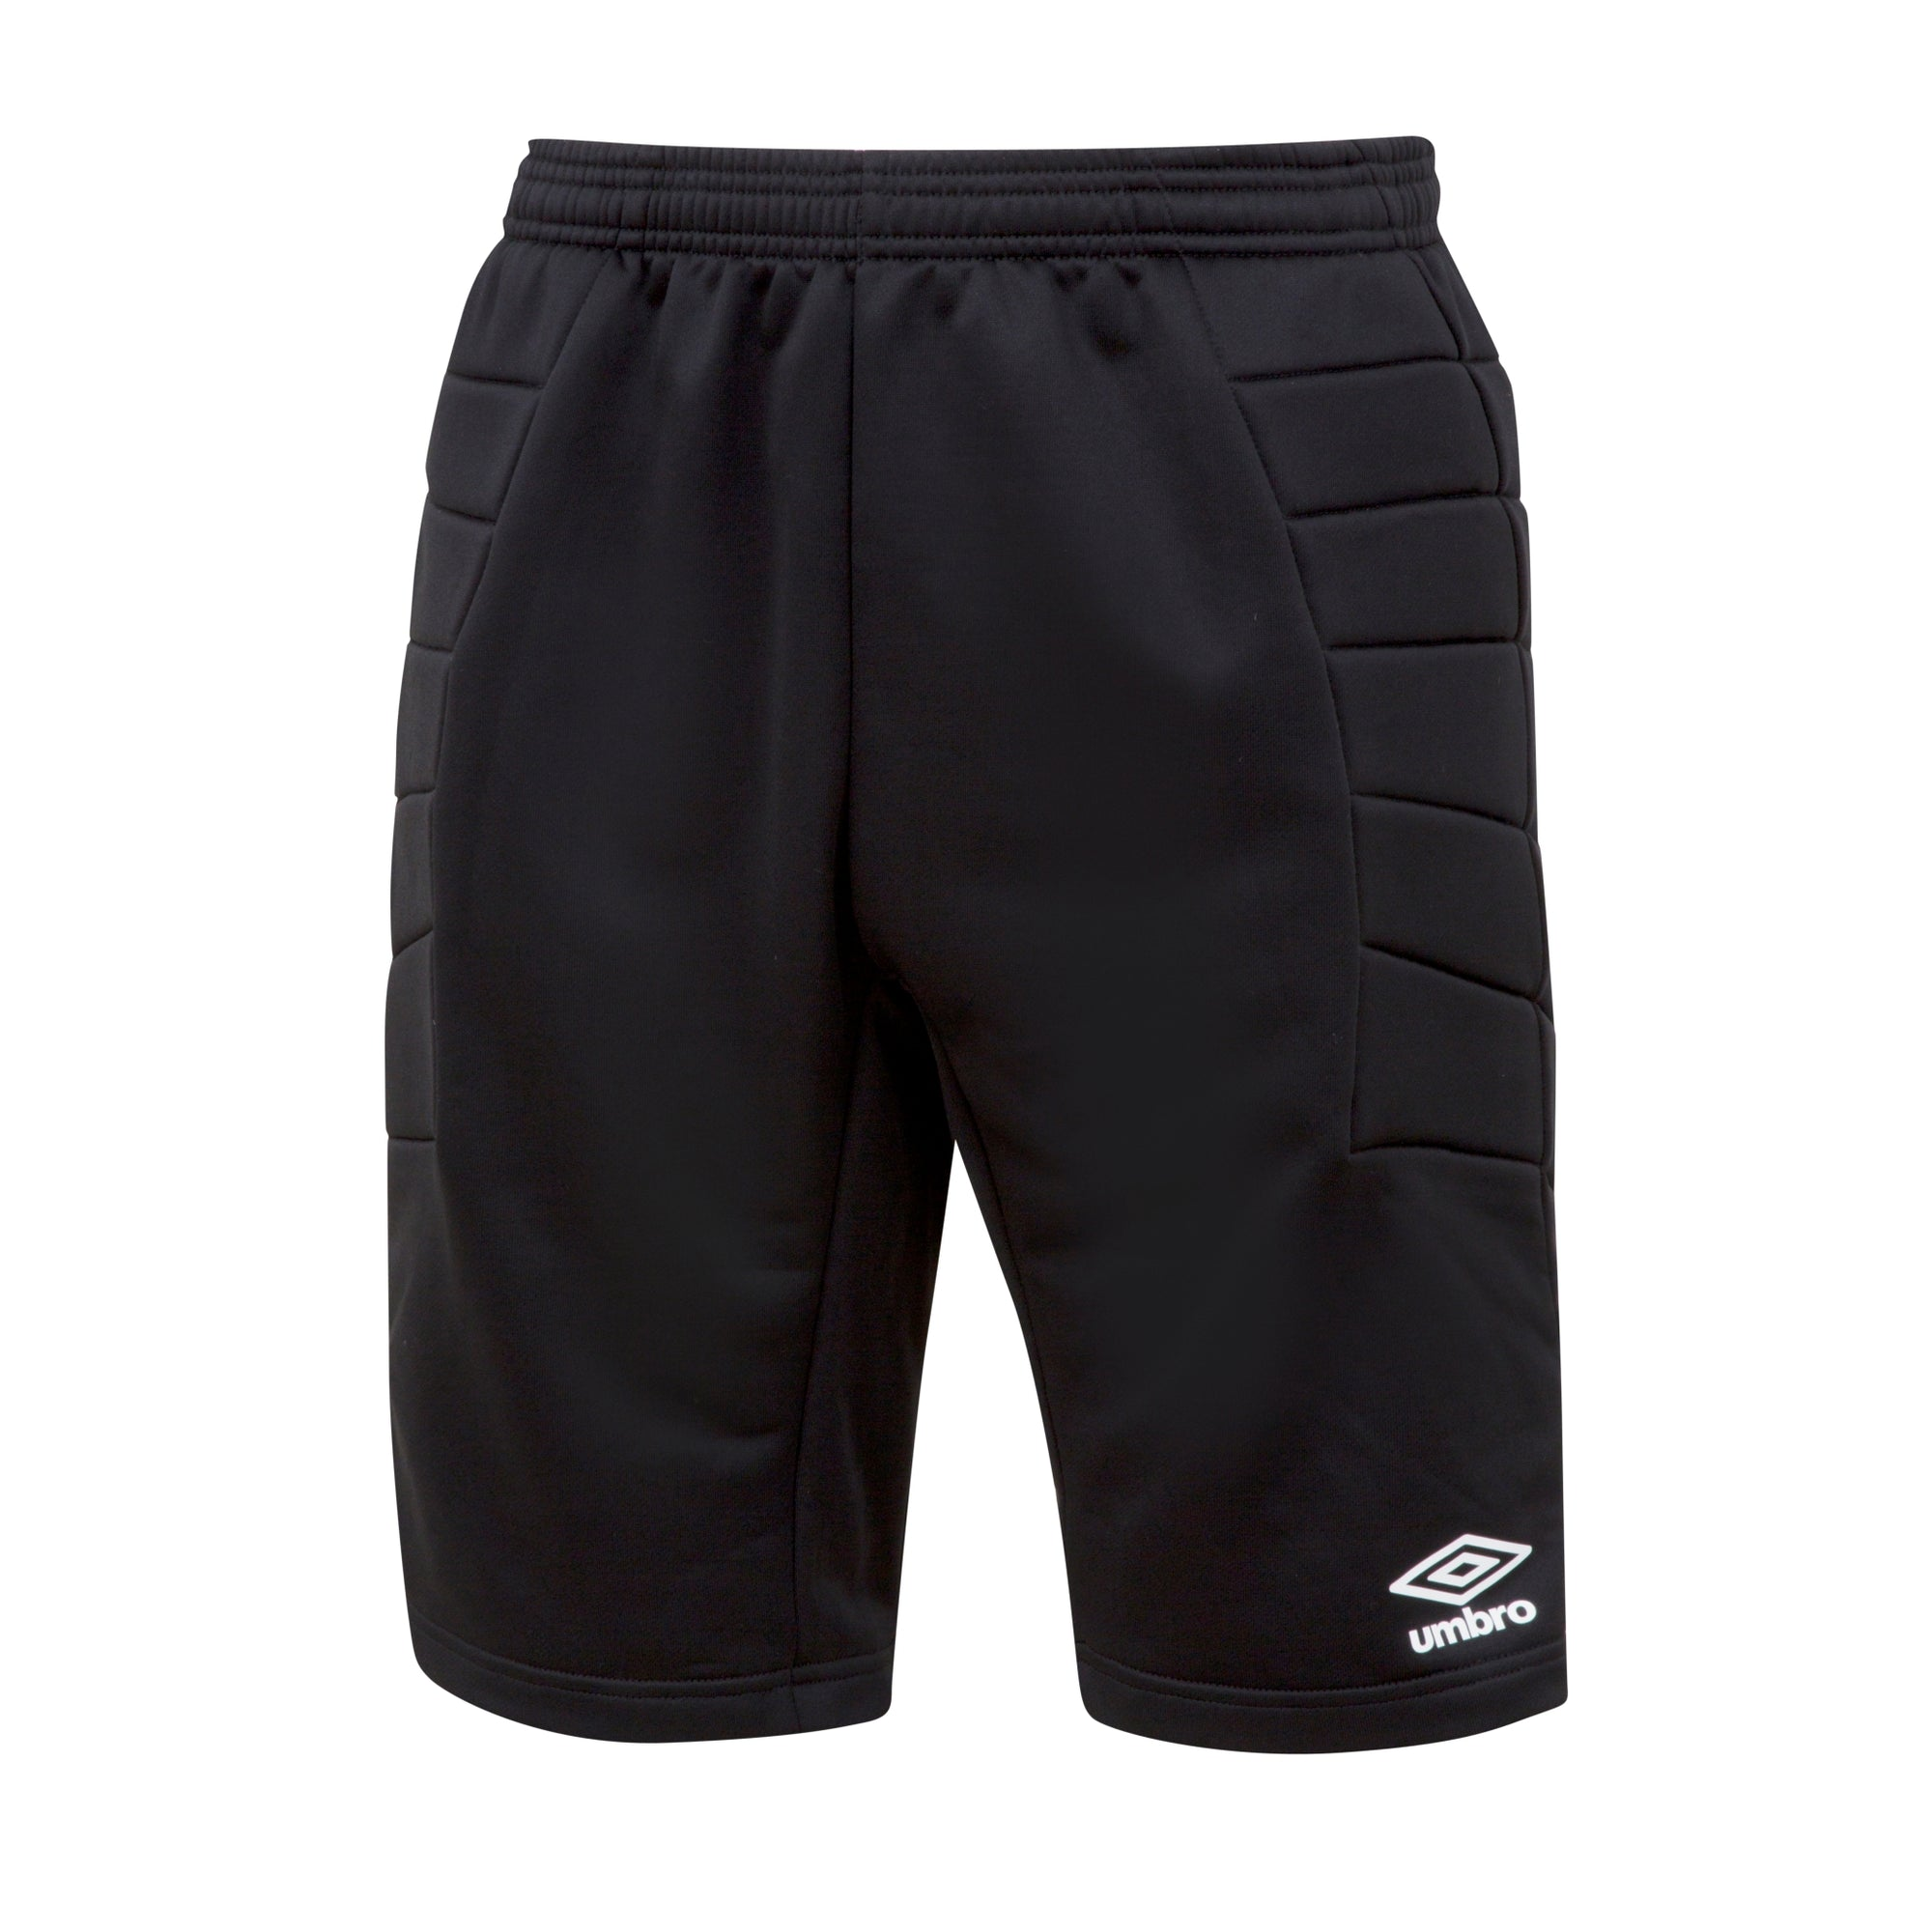 Umbro GK padded short in black with white Umbro logo on left leg